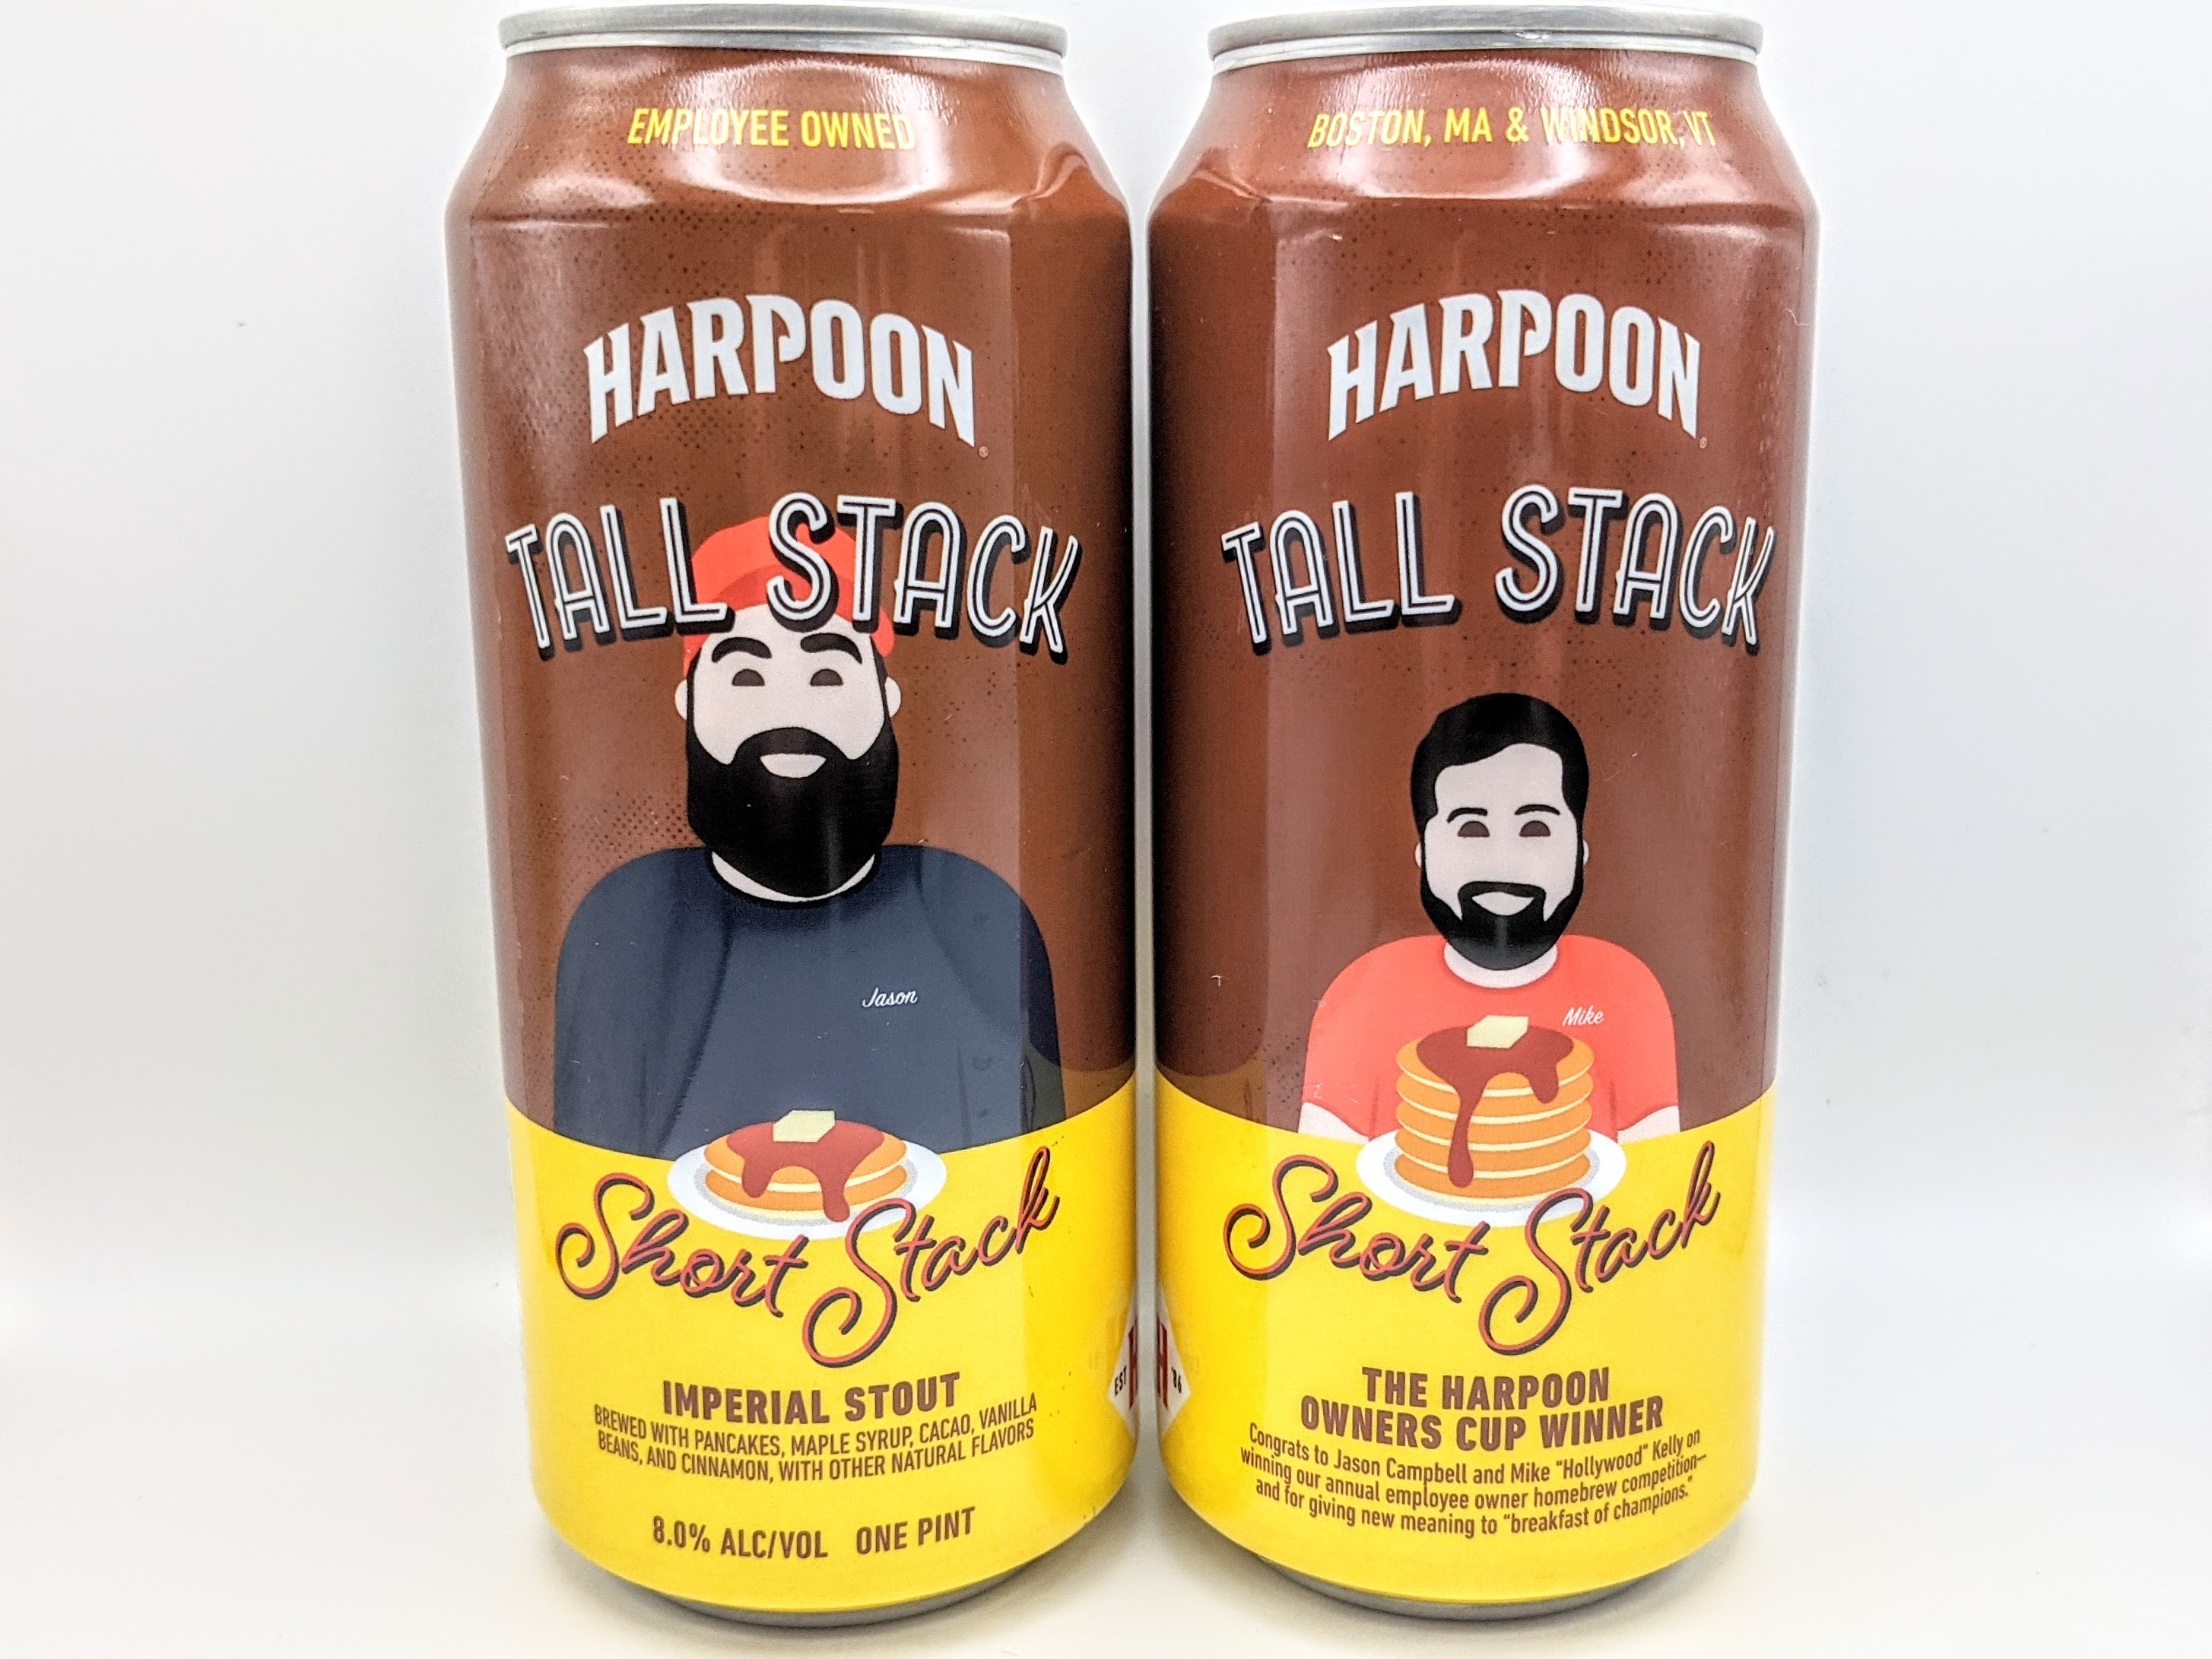 Two cans of beer stand next to each other on a white background, showing two sides of the pancake-themed label of the same beer.